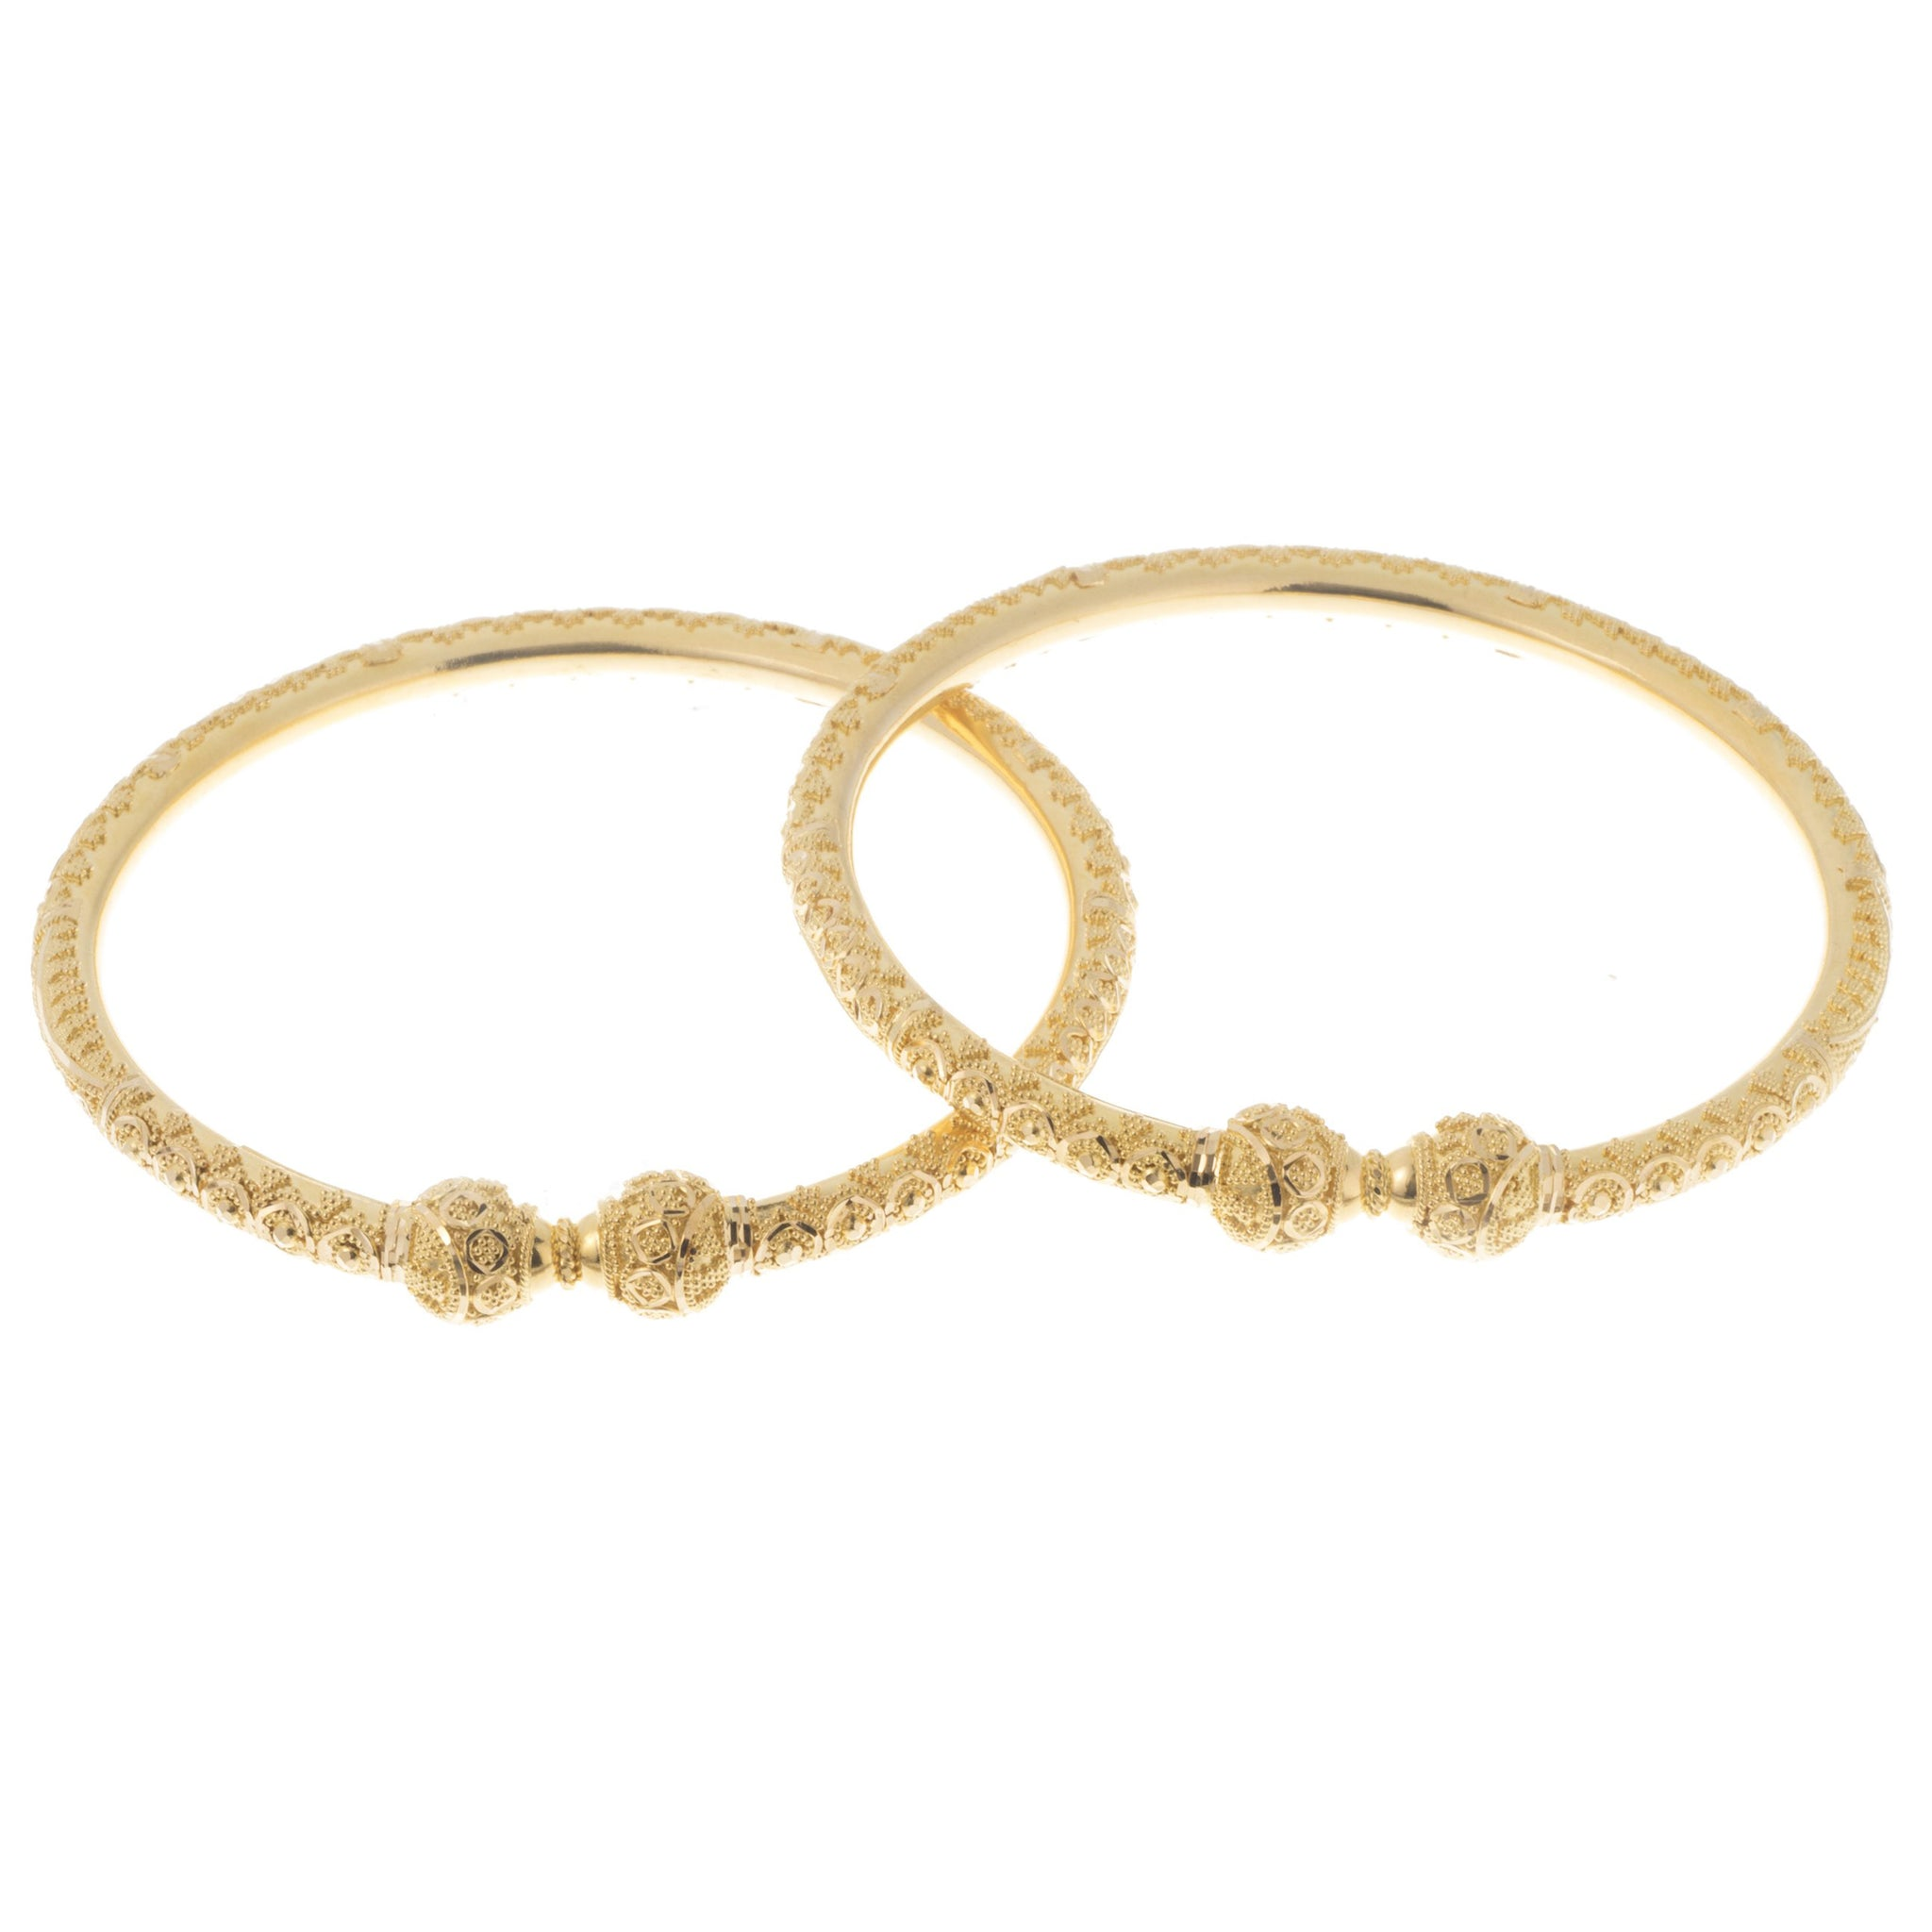 e8ebc4960 22ct Gold Bangles with Diamond Cut Design and Comfort Fit B-7405 ...